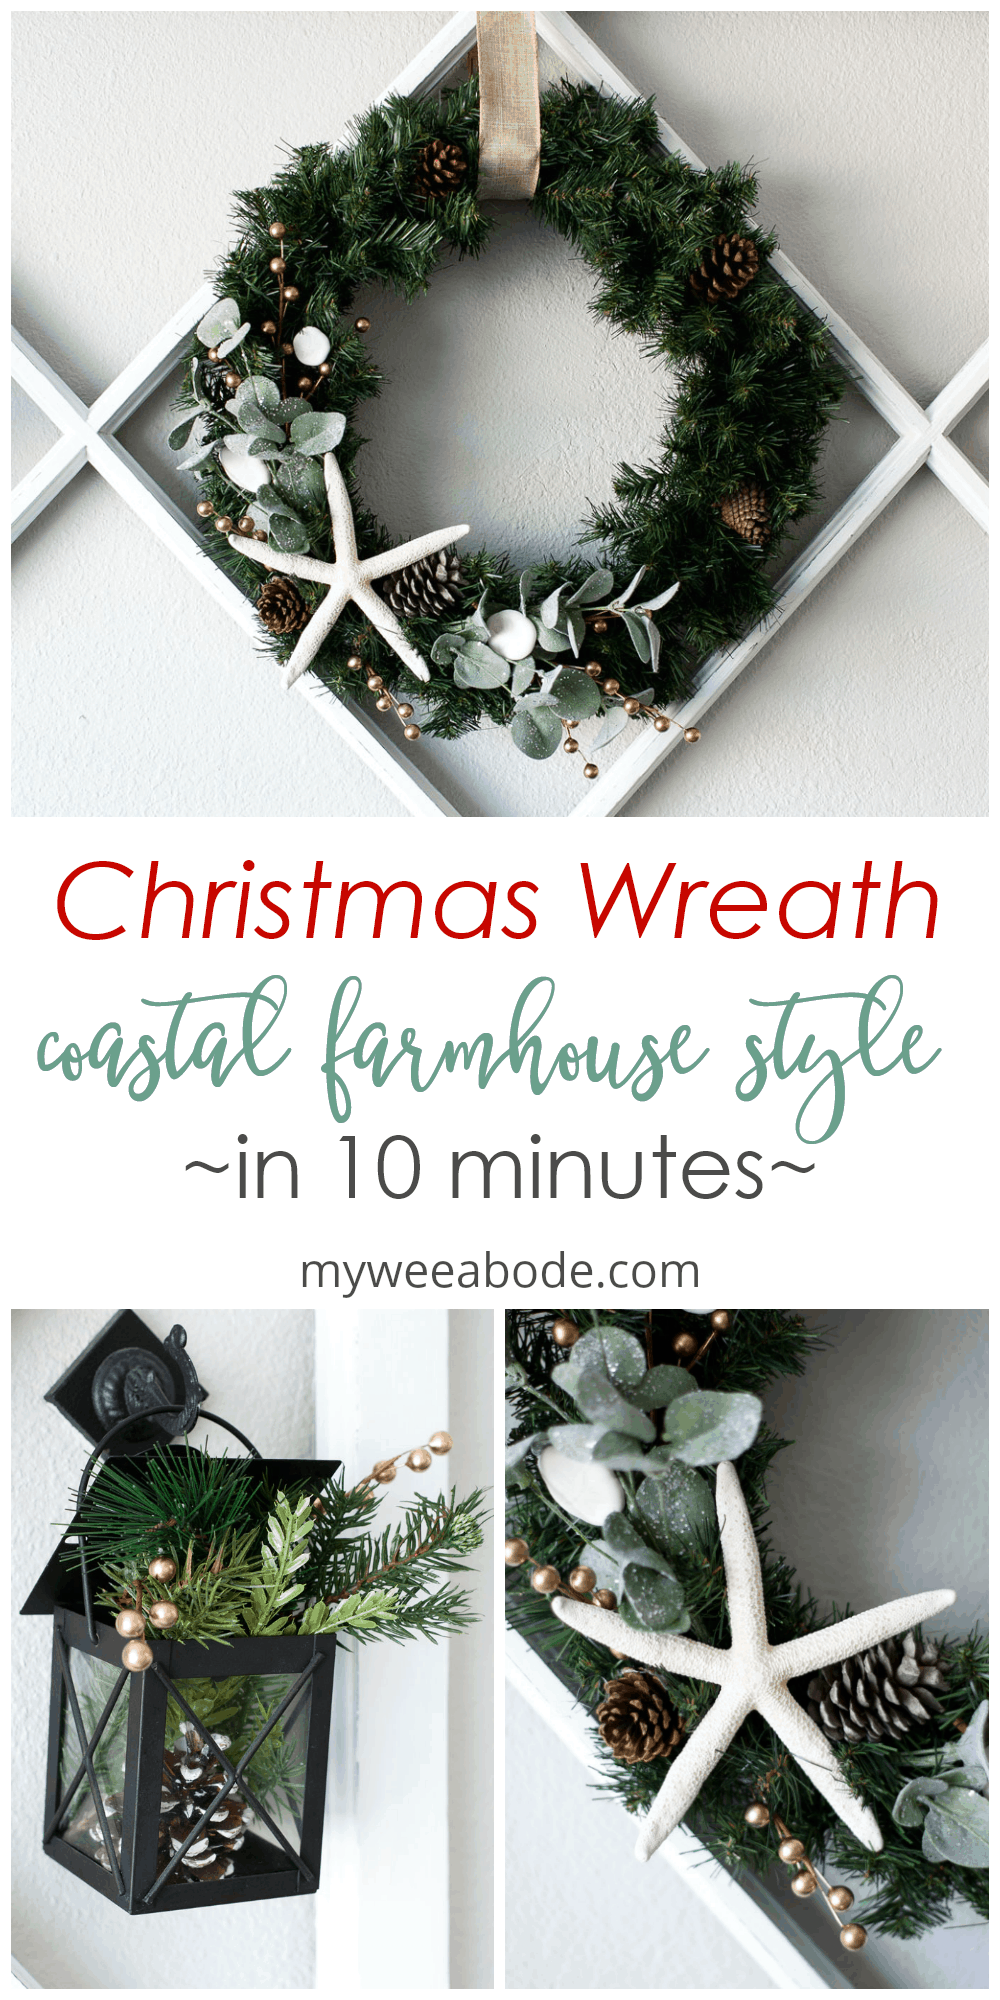 diy coastal farmhouse winter wreath various photos